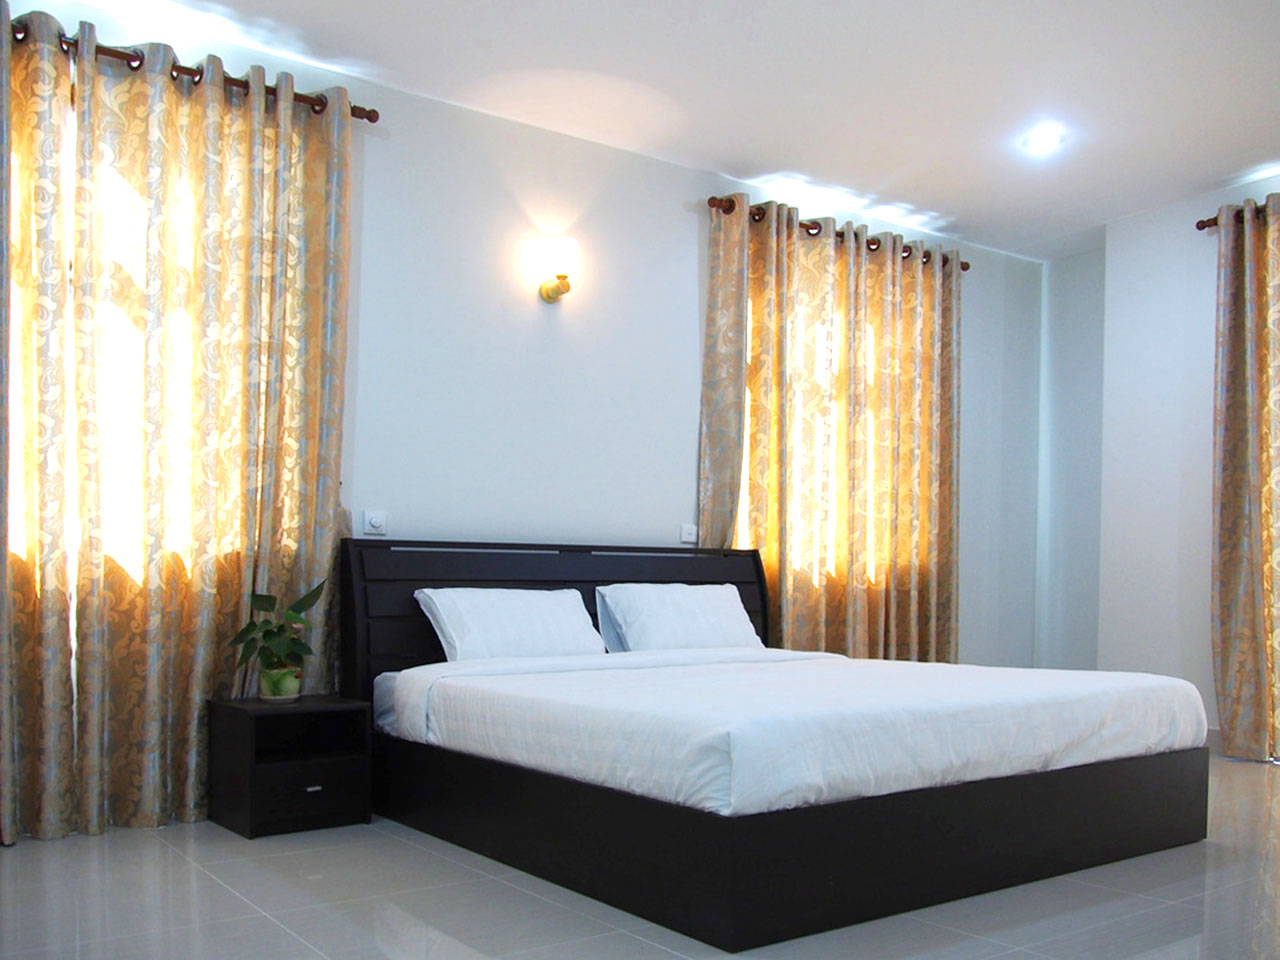 2 bedrooms with pool for rent @ Tuol Svay Prey 1